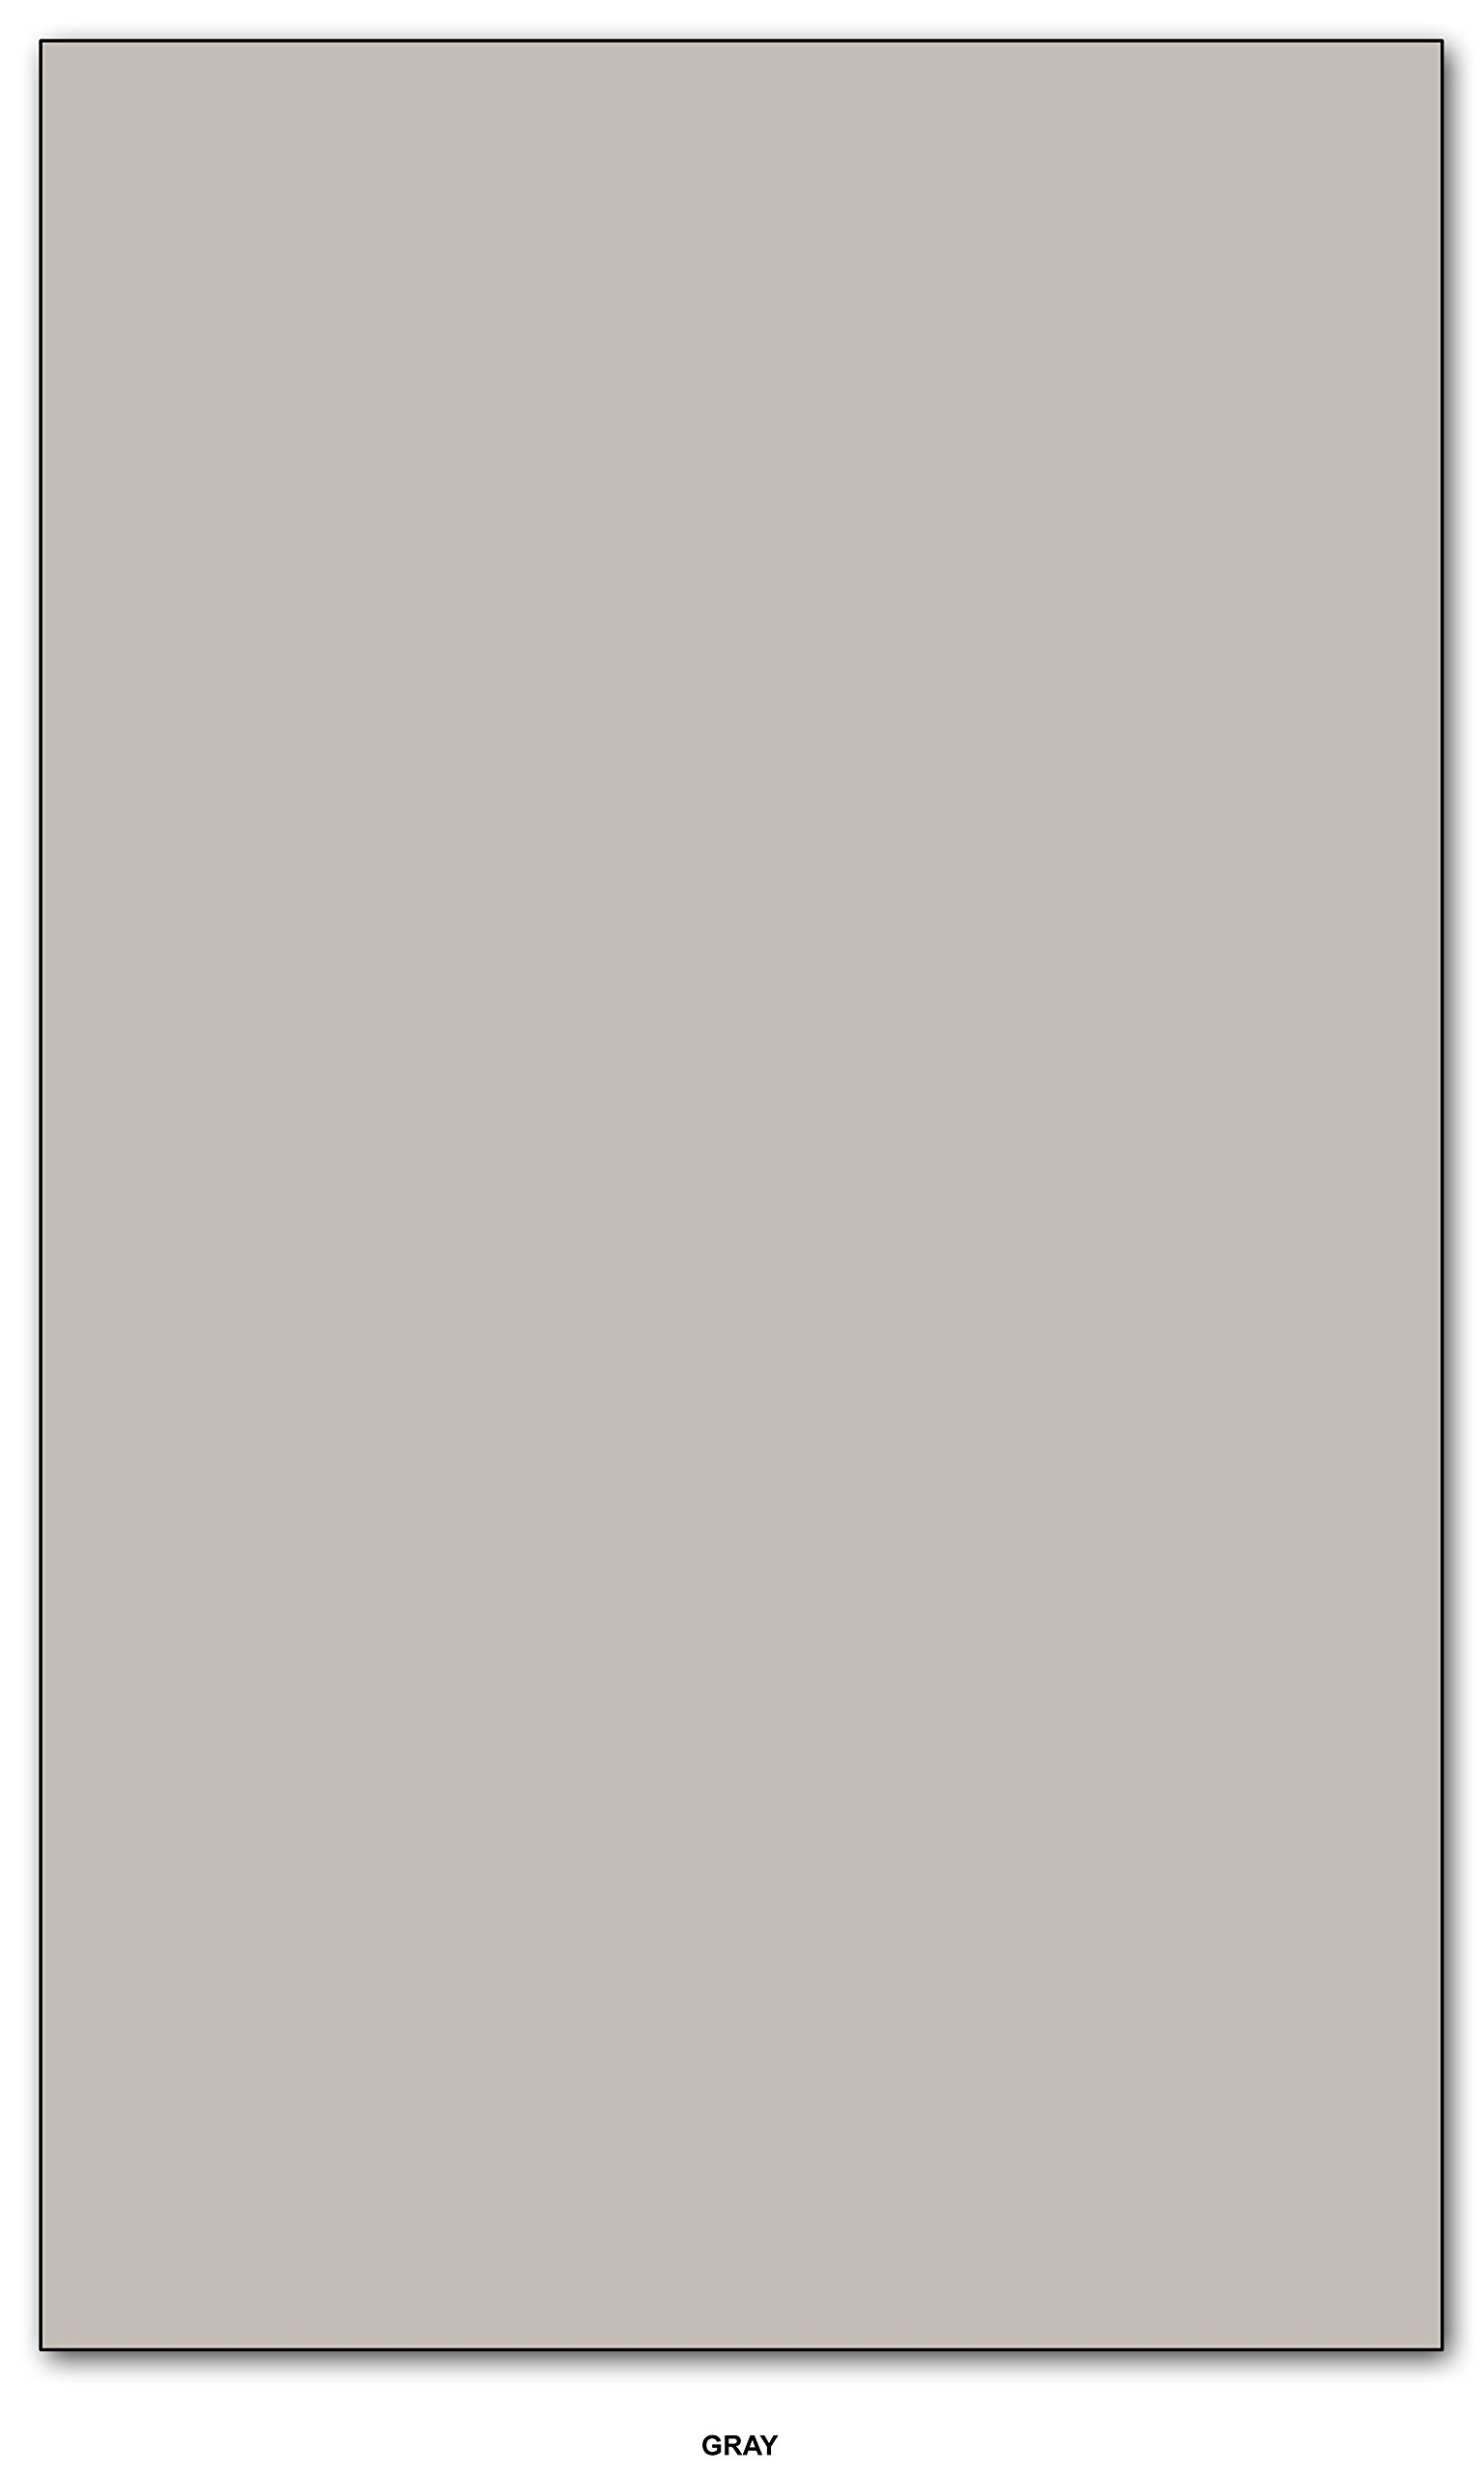 Gray - Pastel Color Paper 20lb. Size 8.5 X 14 Legal/Menu Size - 500 Per Pack